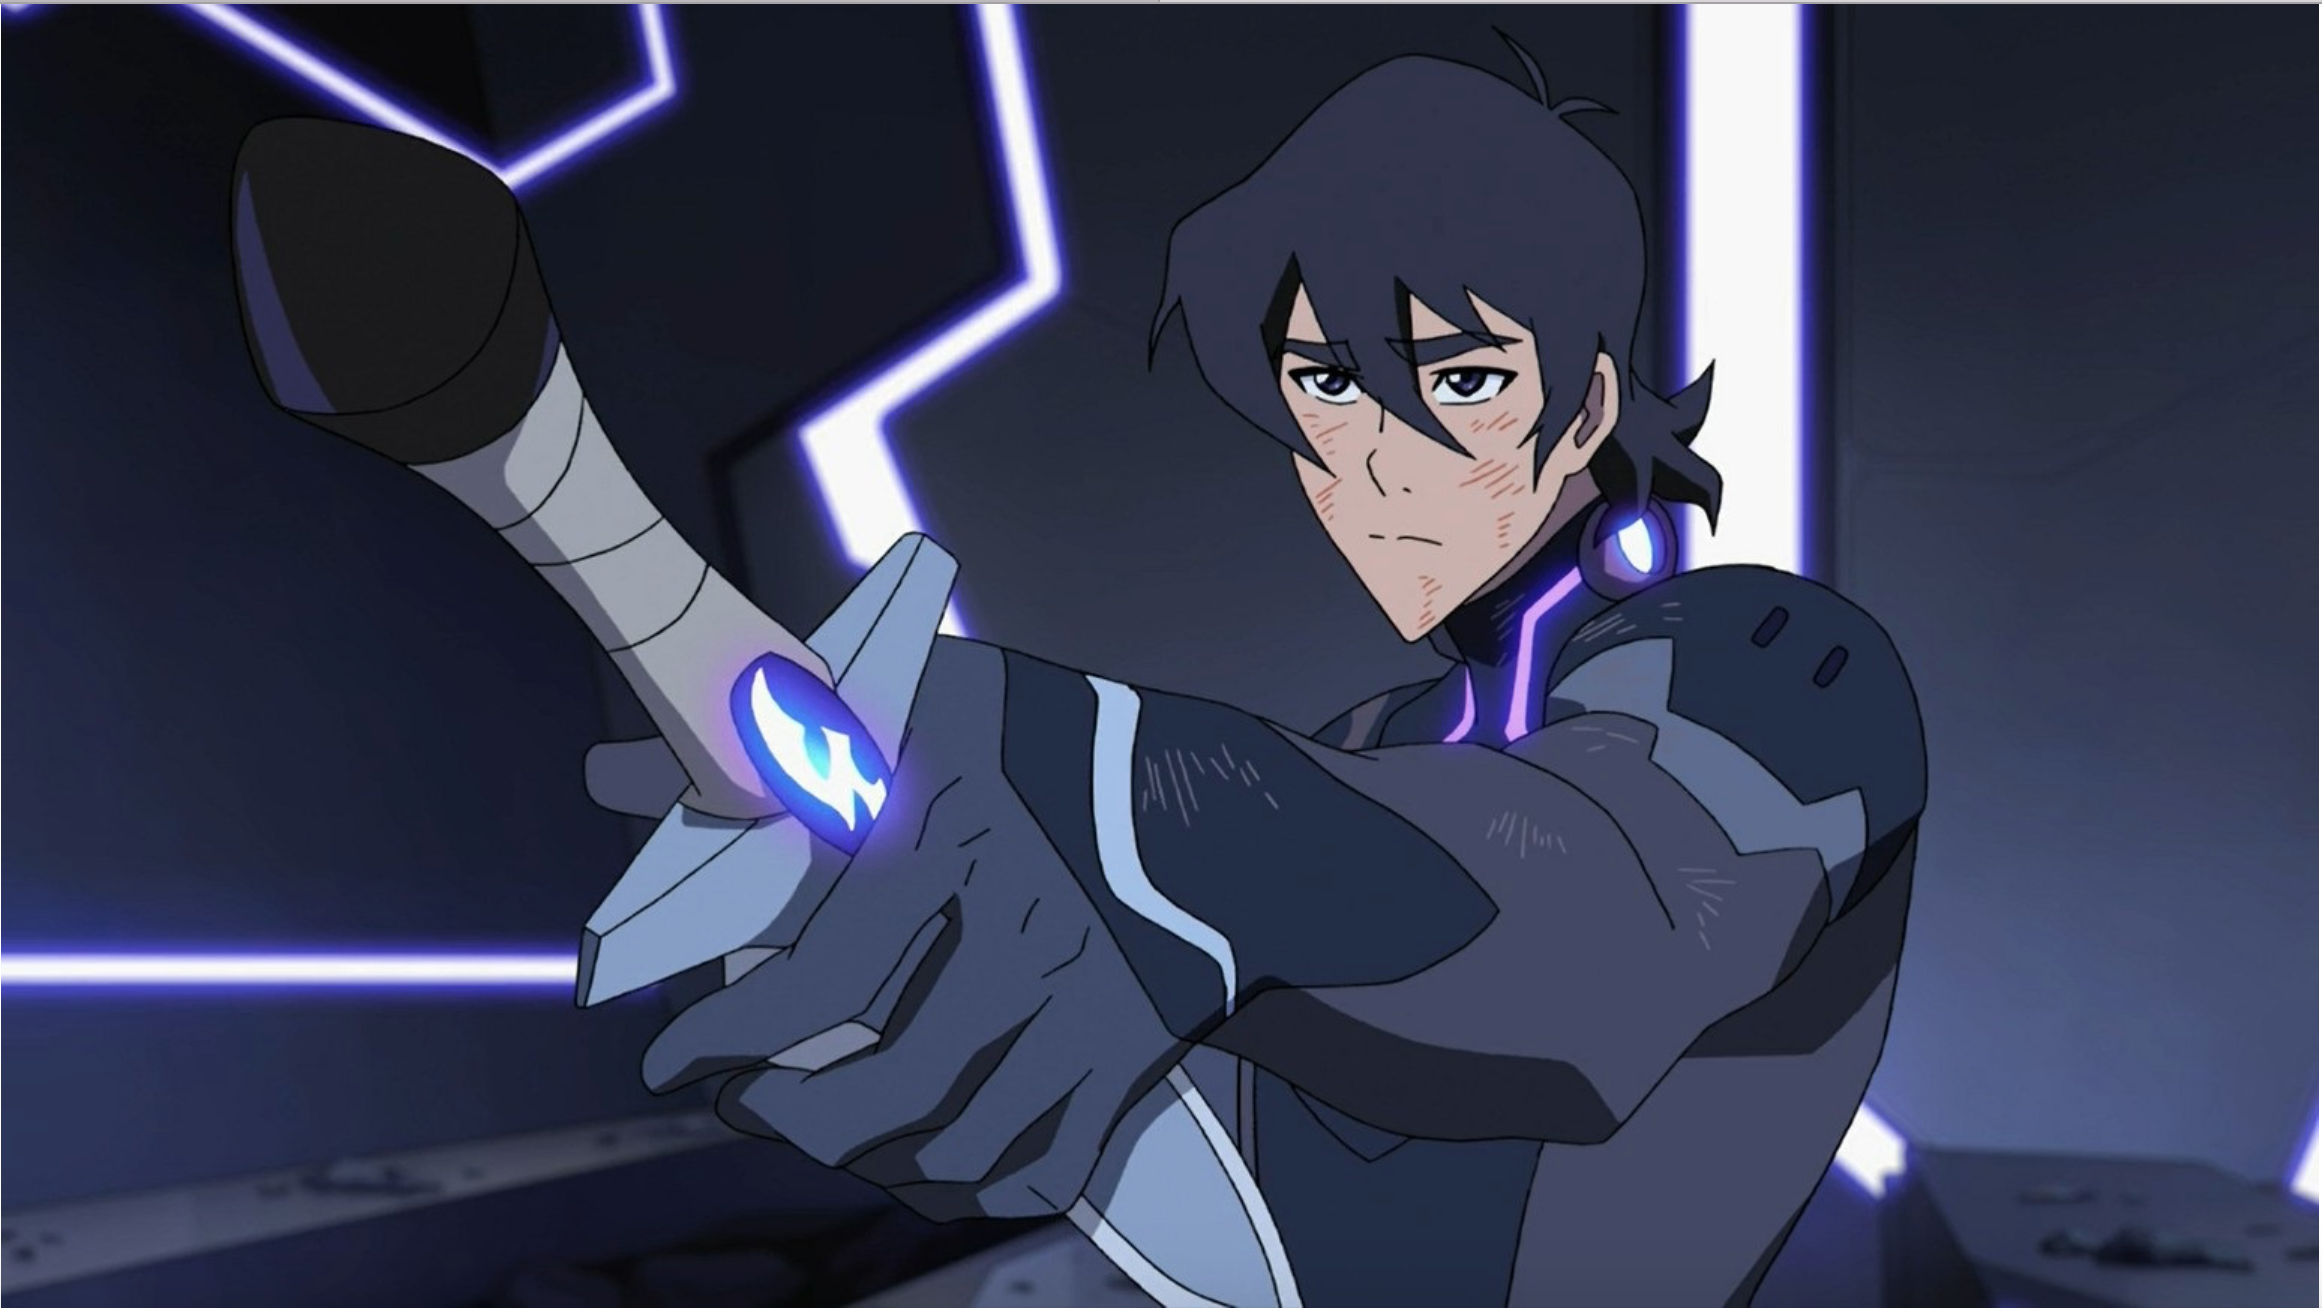 Keith in his Galra armor handing over his knife blade to the